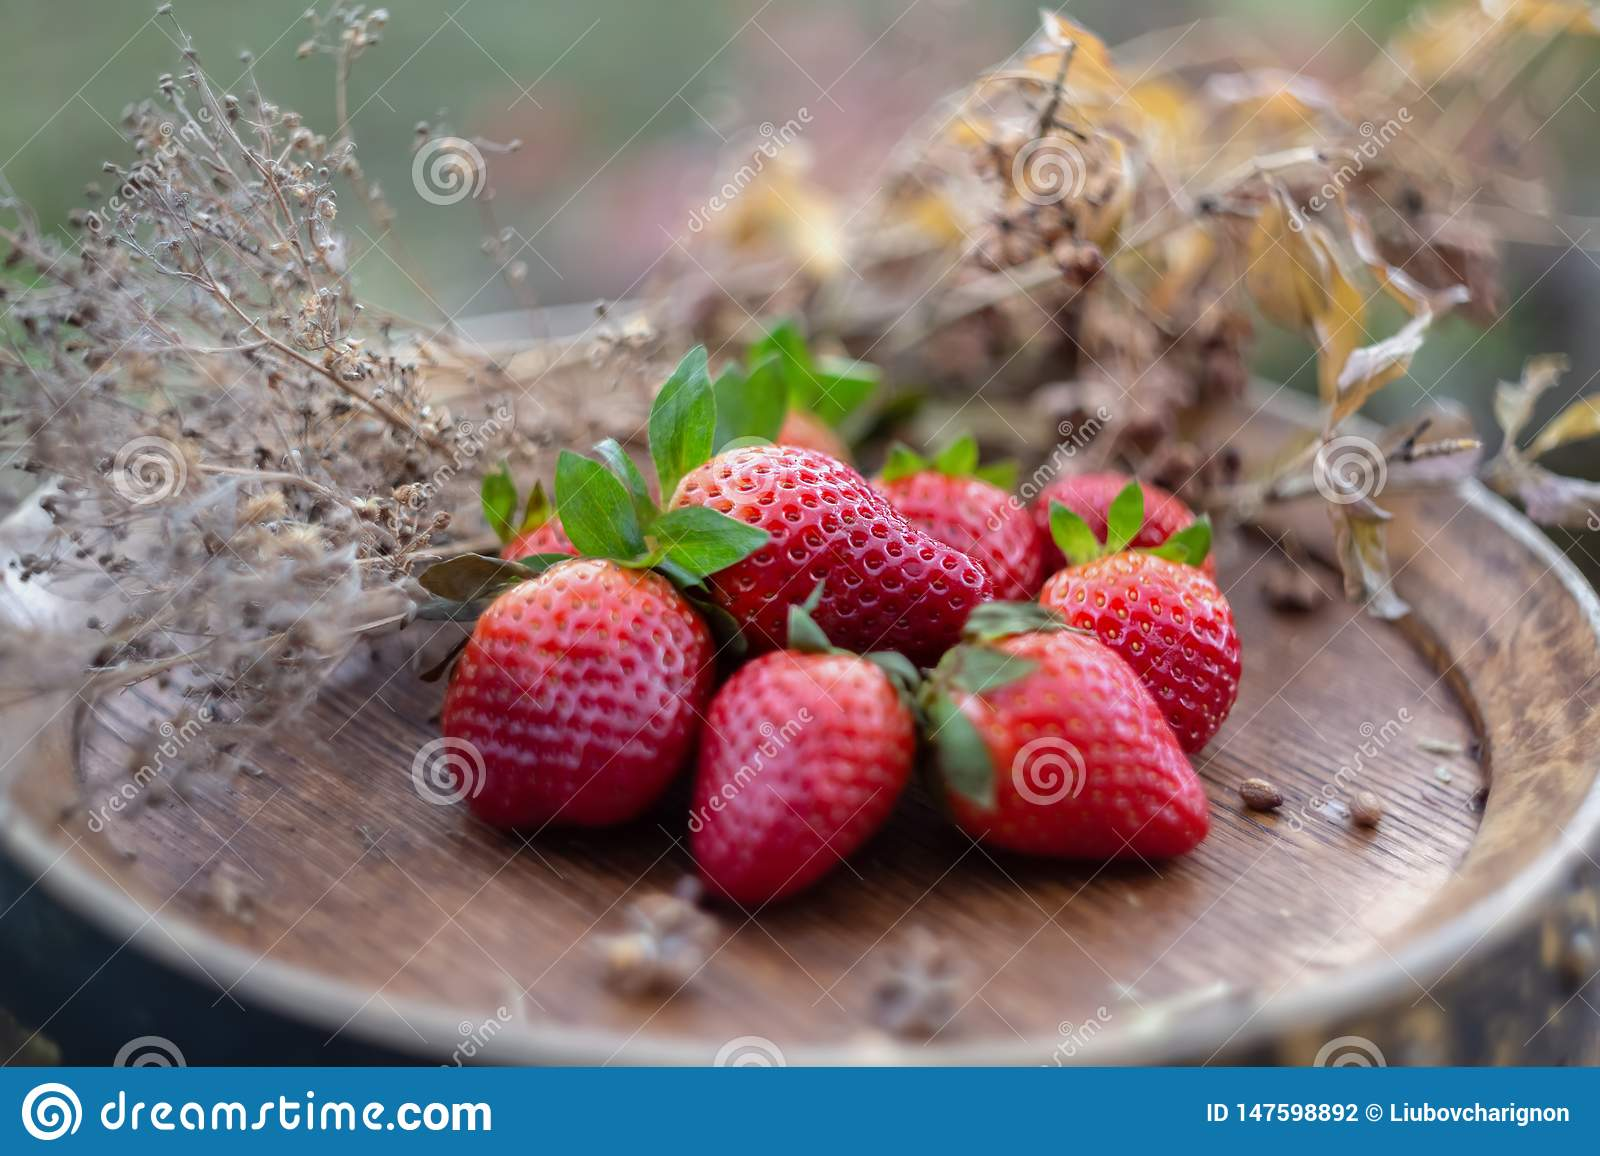 Strawberries on a wine wooden barrel in orchard in summertime. Red fruits